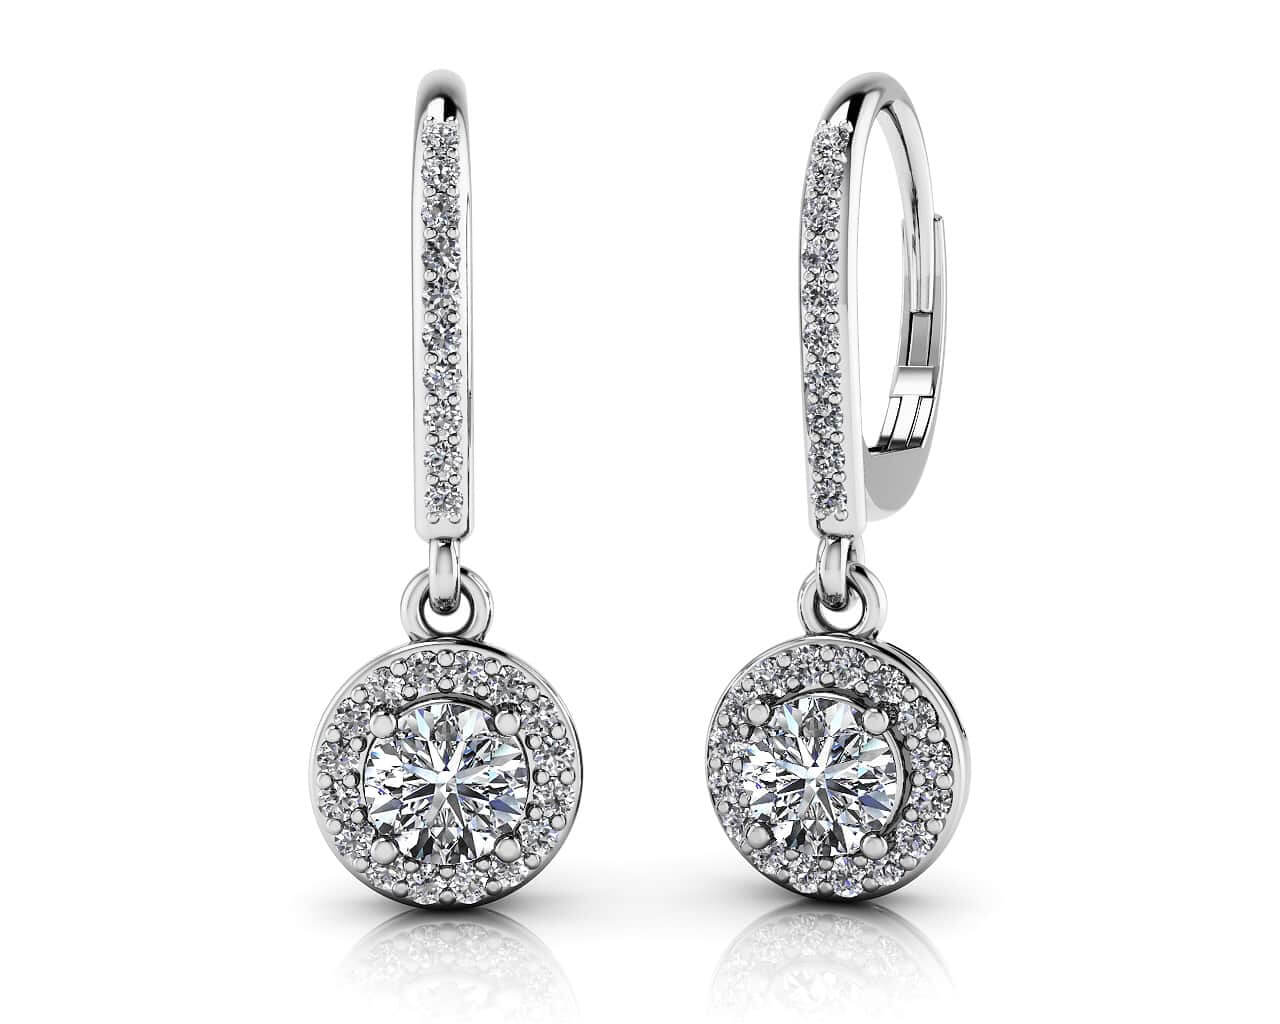 Hanging Diamond Cered Leverback Earrings 3 4 Carat Total Weight